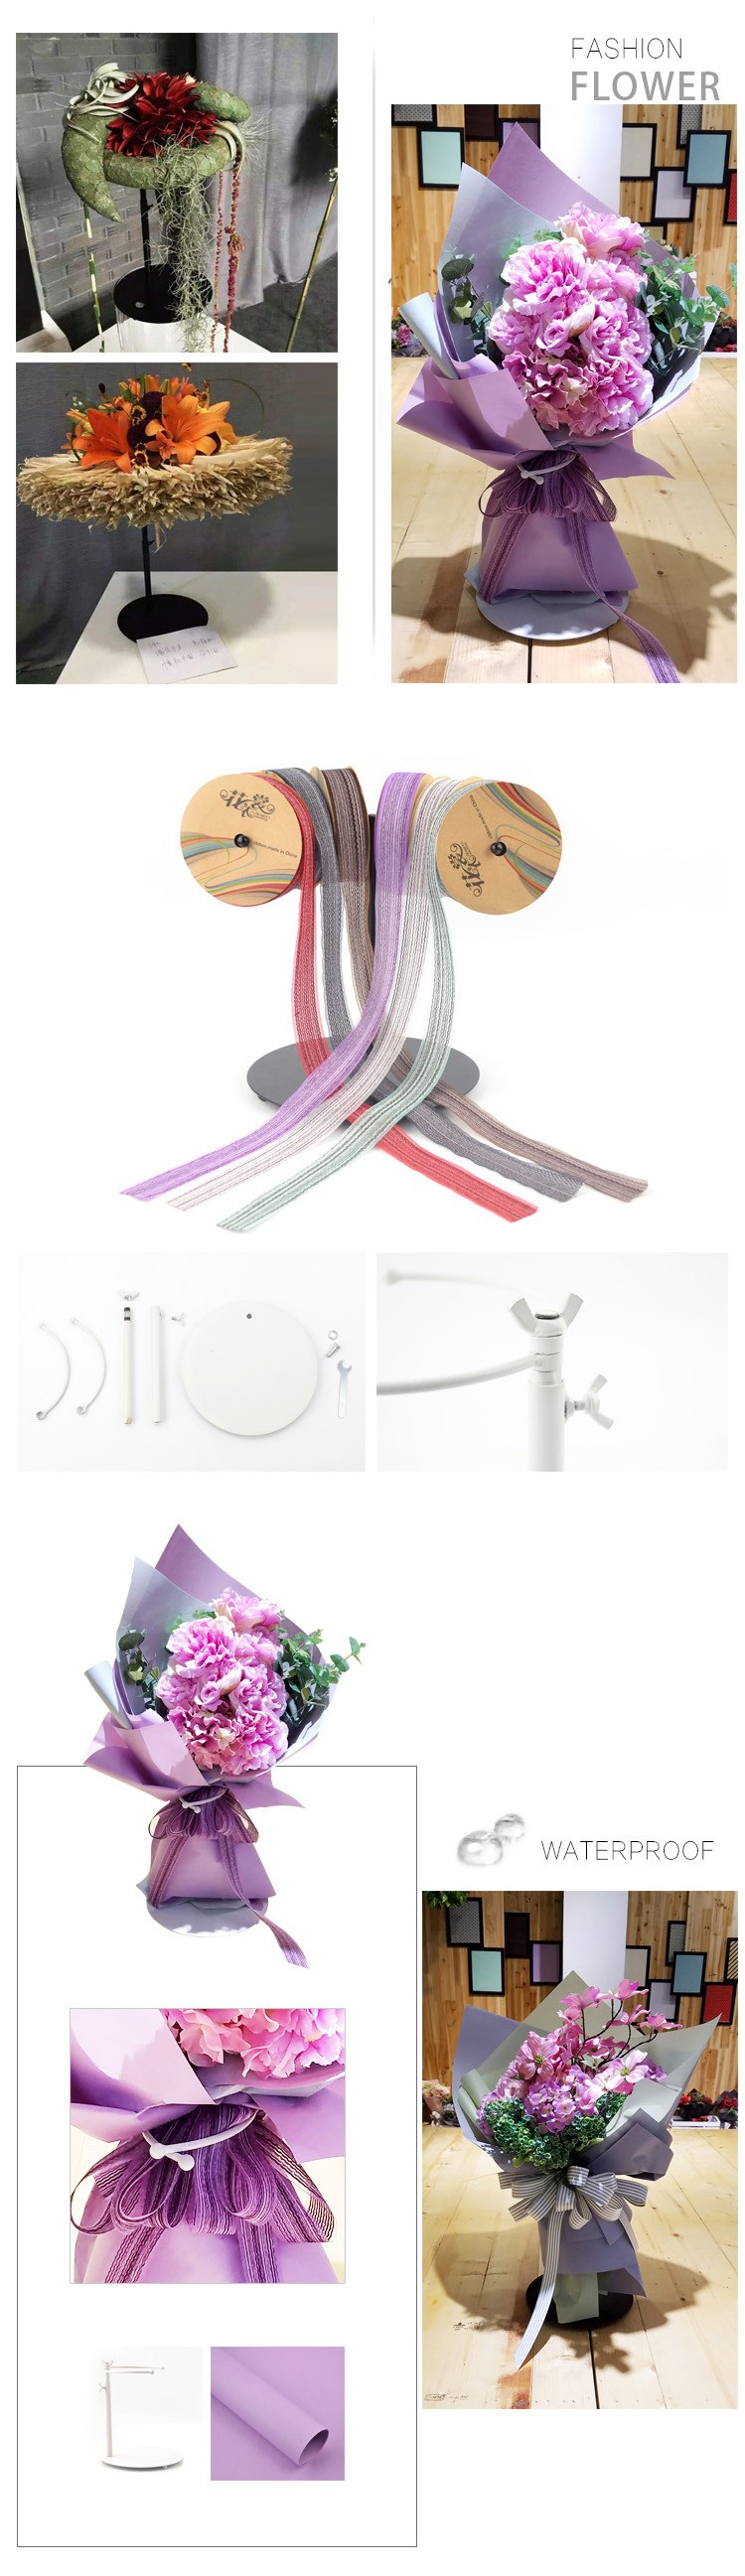 Table setting iron flower wrapping bouquets stander holder florist supplies